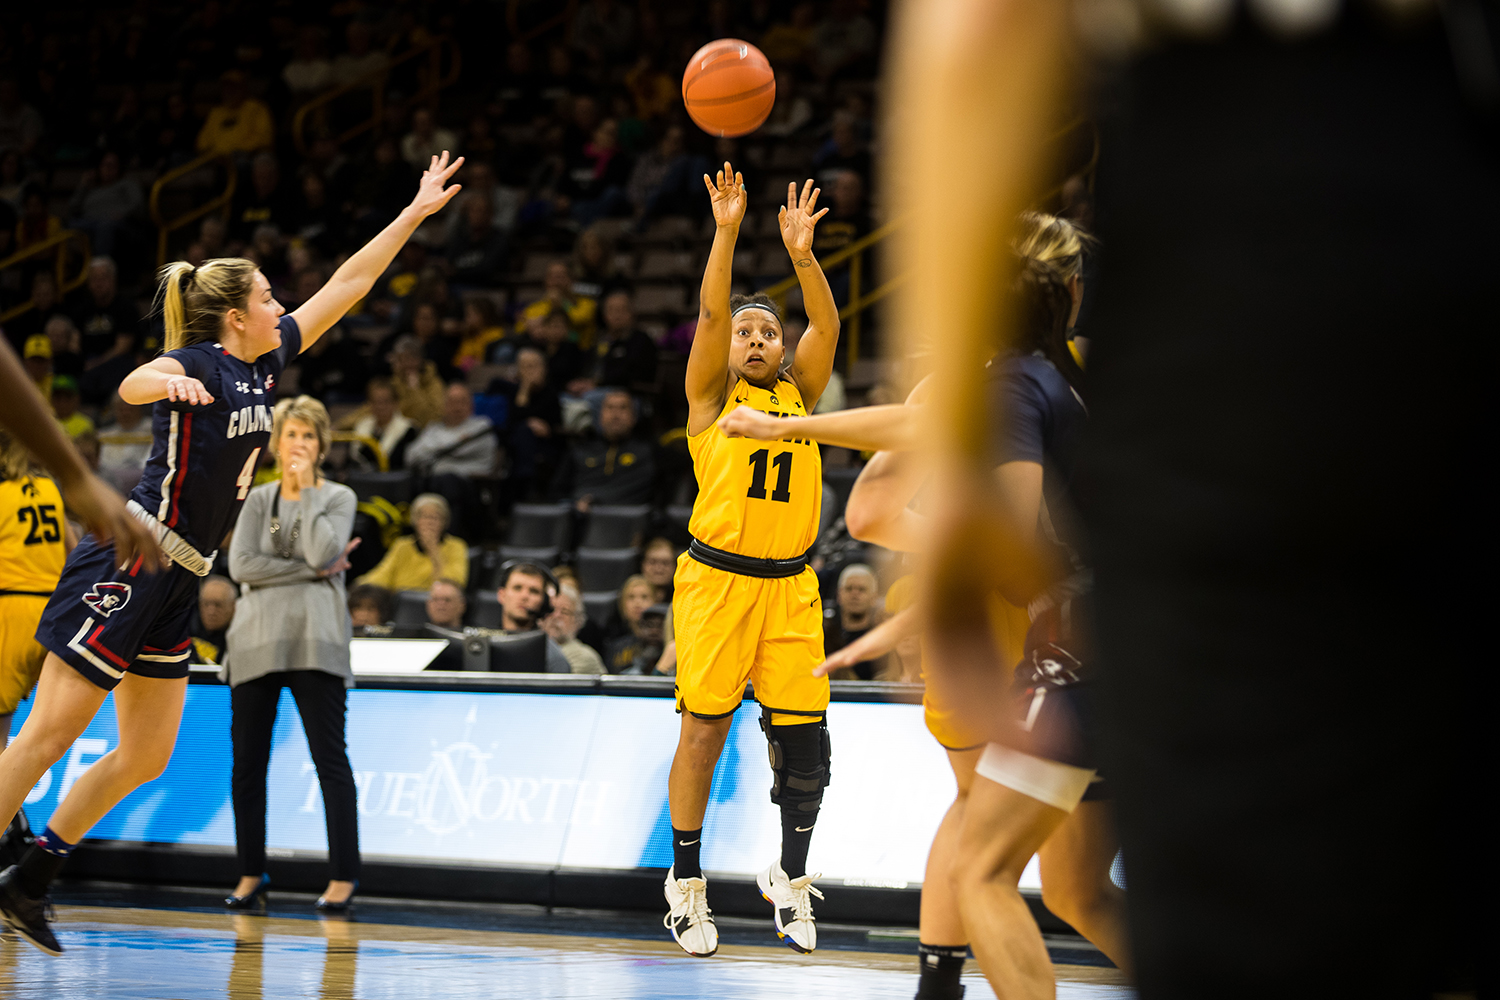 Guard Tania Davis attempts a three-pointer during the women's basketball game at Carver Hawkeye Arena on Dec. 2, 2018. The Hawkeyes won against Robert Morris 92-63.